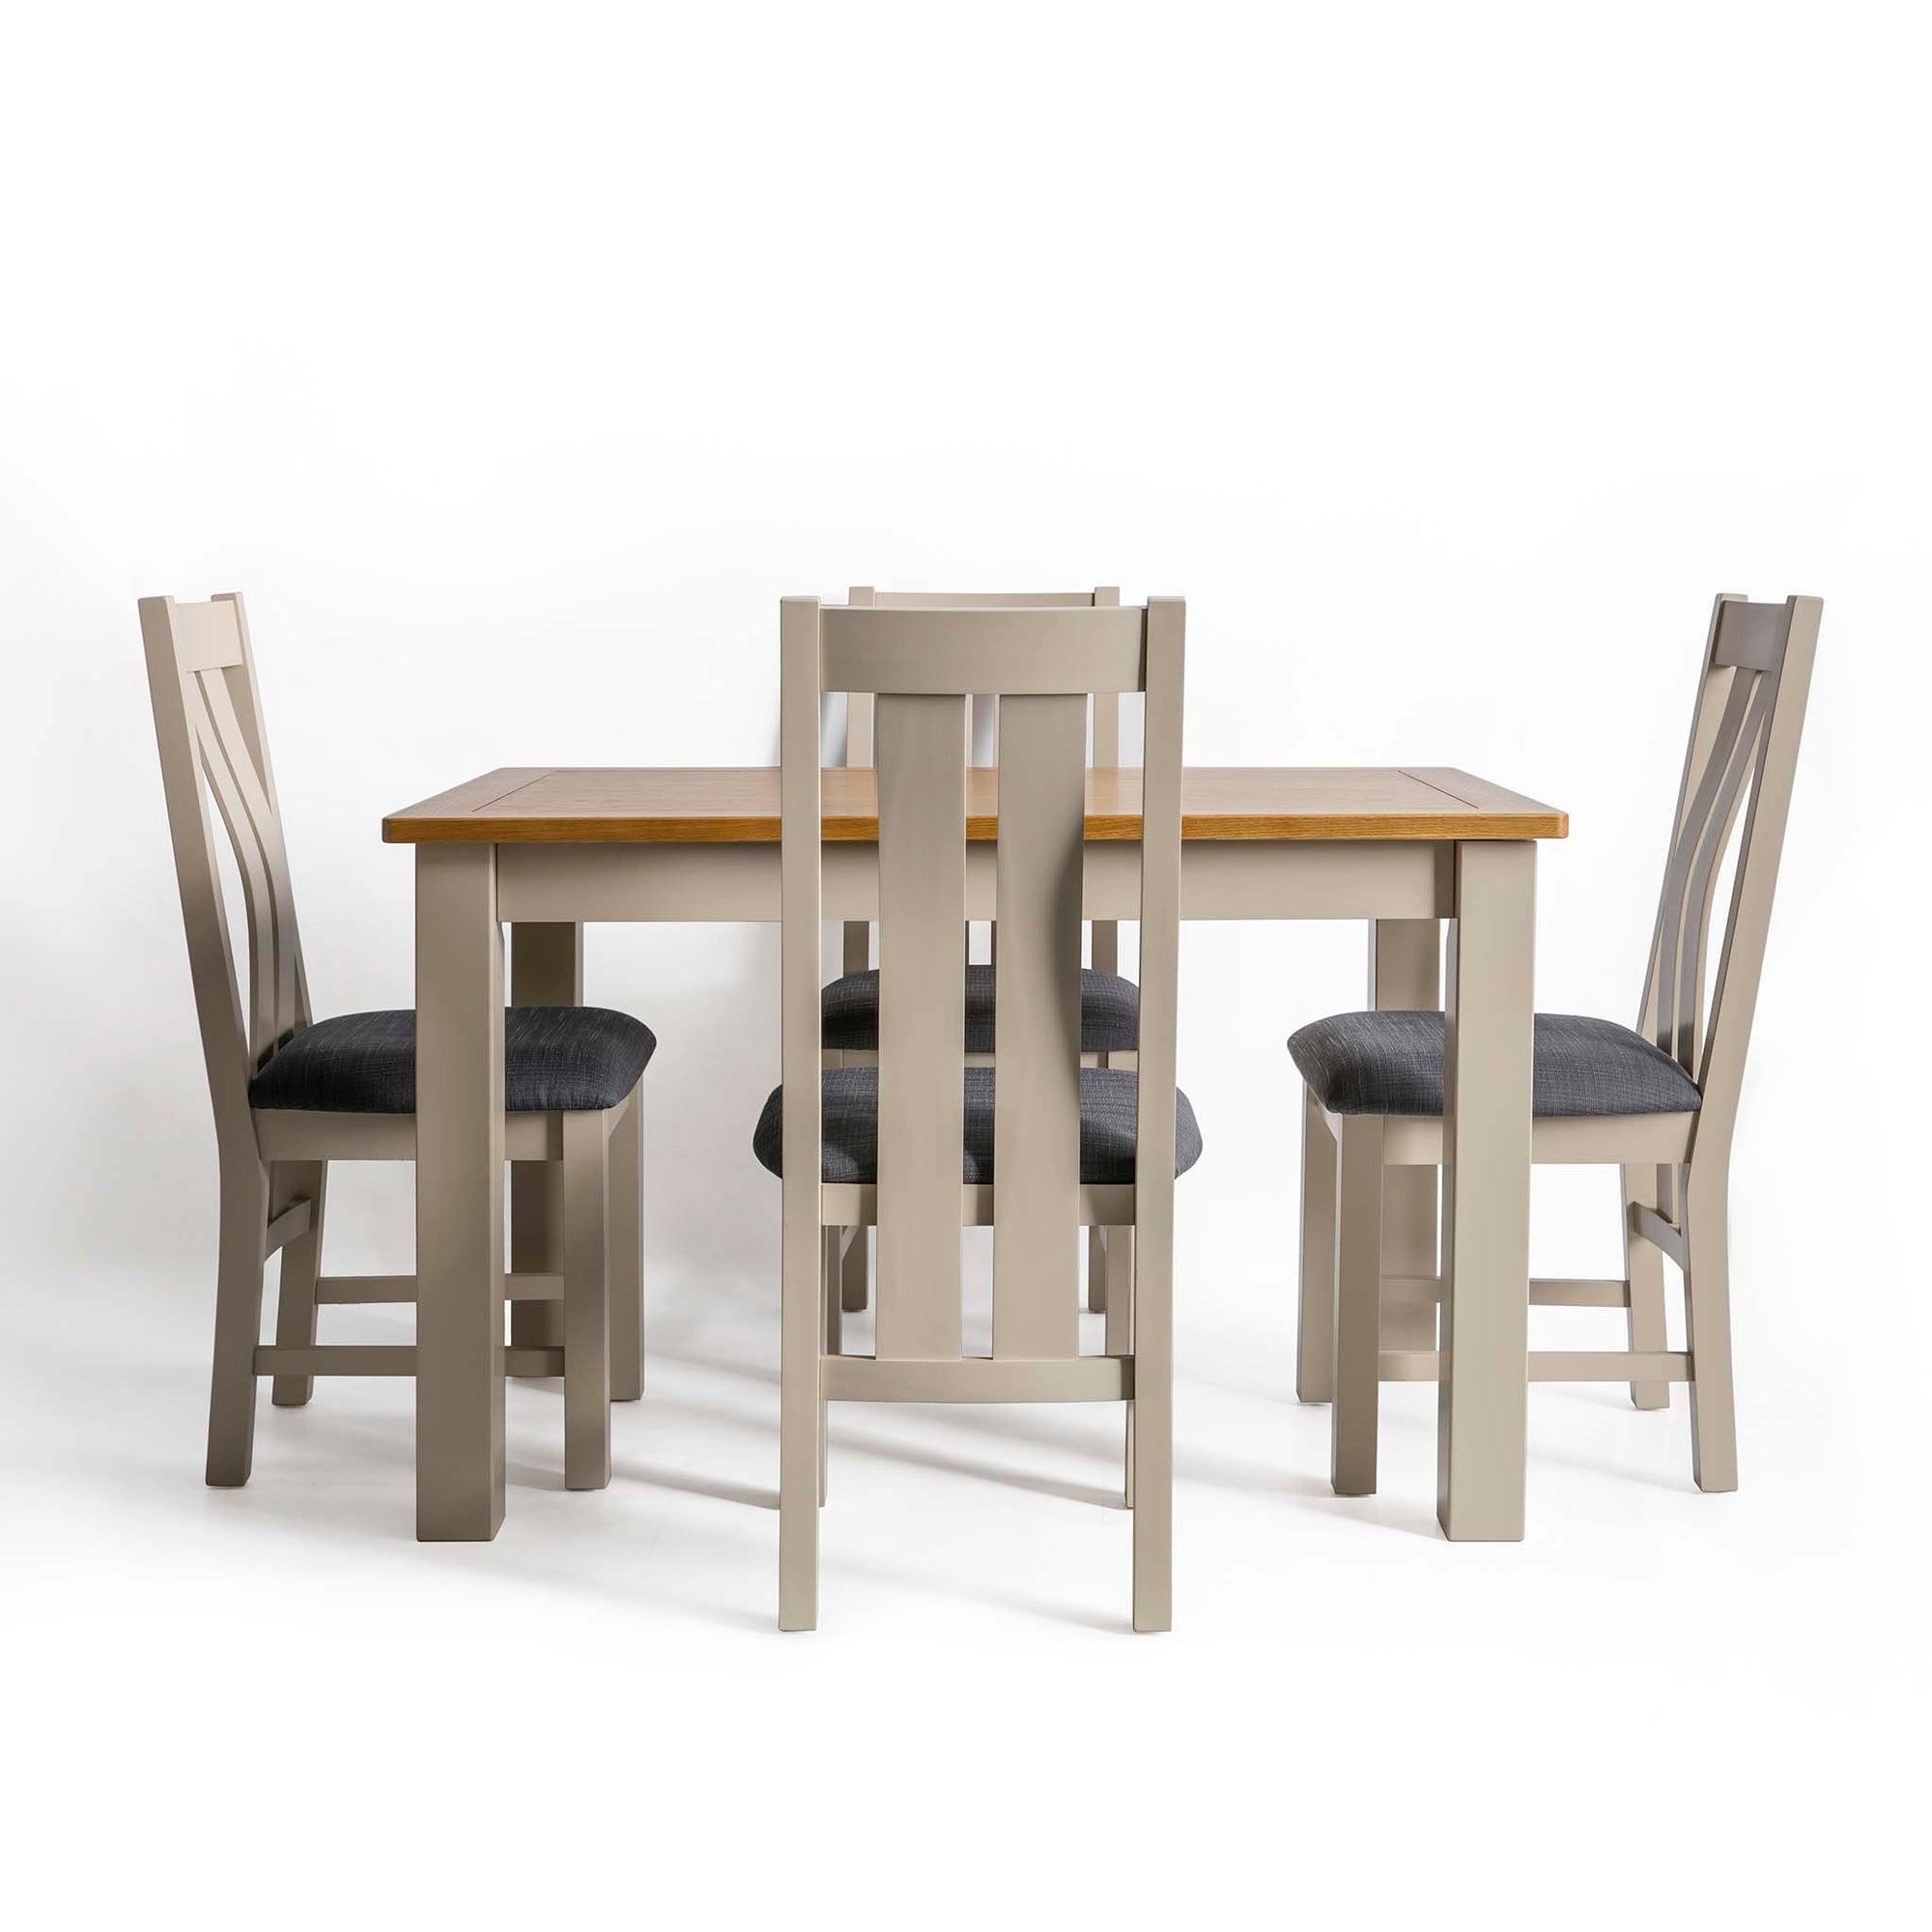 Padstow Stone Grey Dining Table Set with 4 Dining Chairs by Roseland Furniture